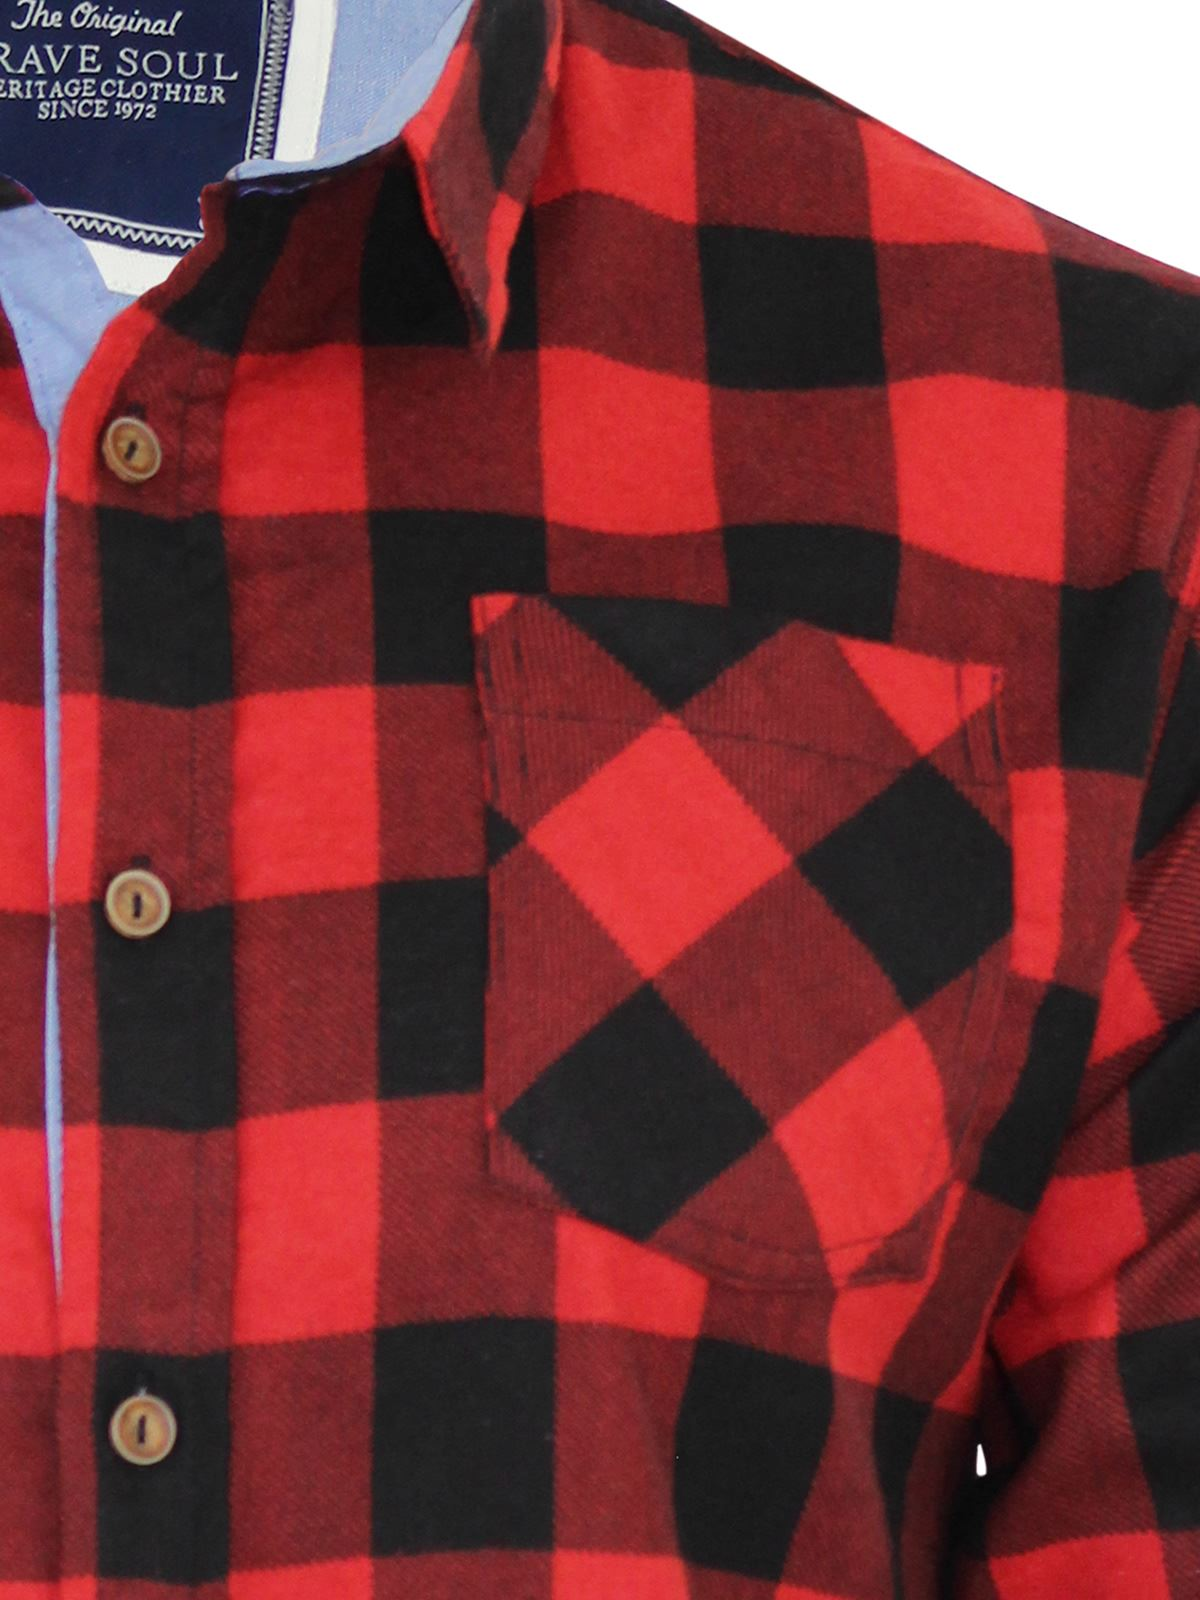 Mens-Check-Shirt-Brave-Soul-Flannel-Brushed-Cotton-Long-Sleeve-Casual-Top thumbnail 22